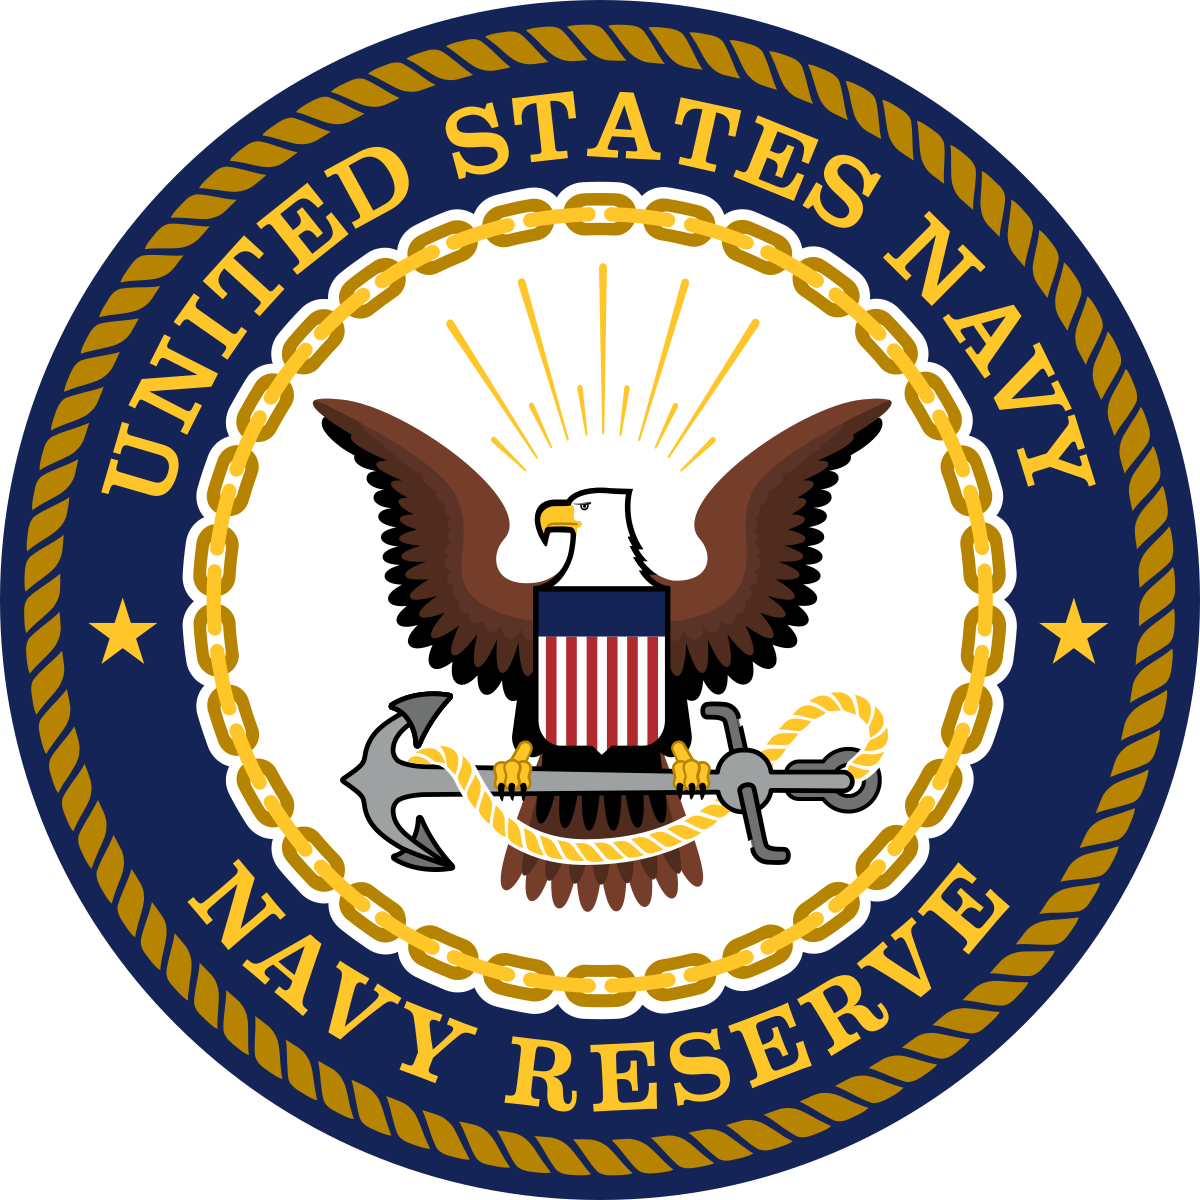 Navy clipart navy australian. United states reserve wikipedia